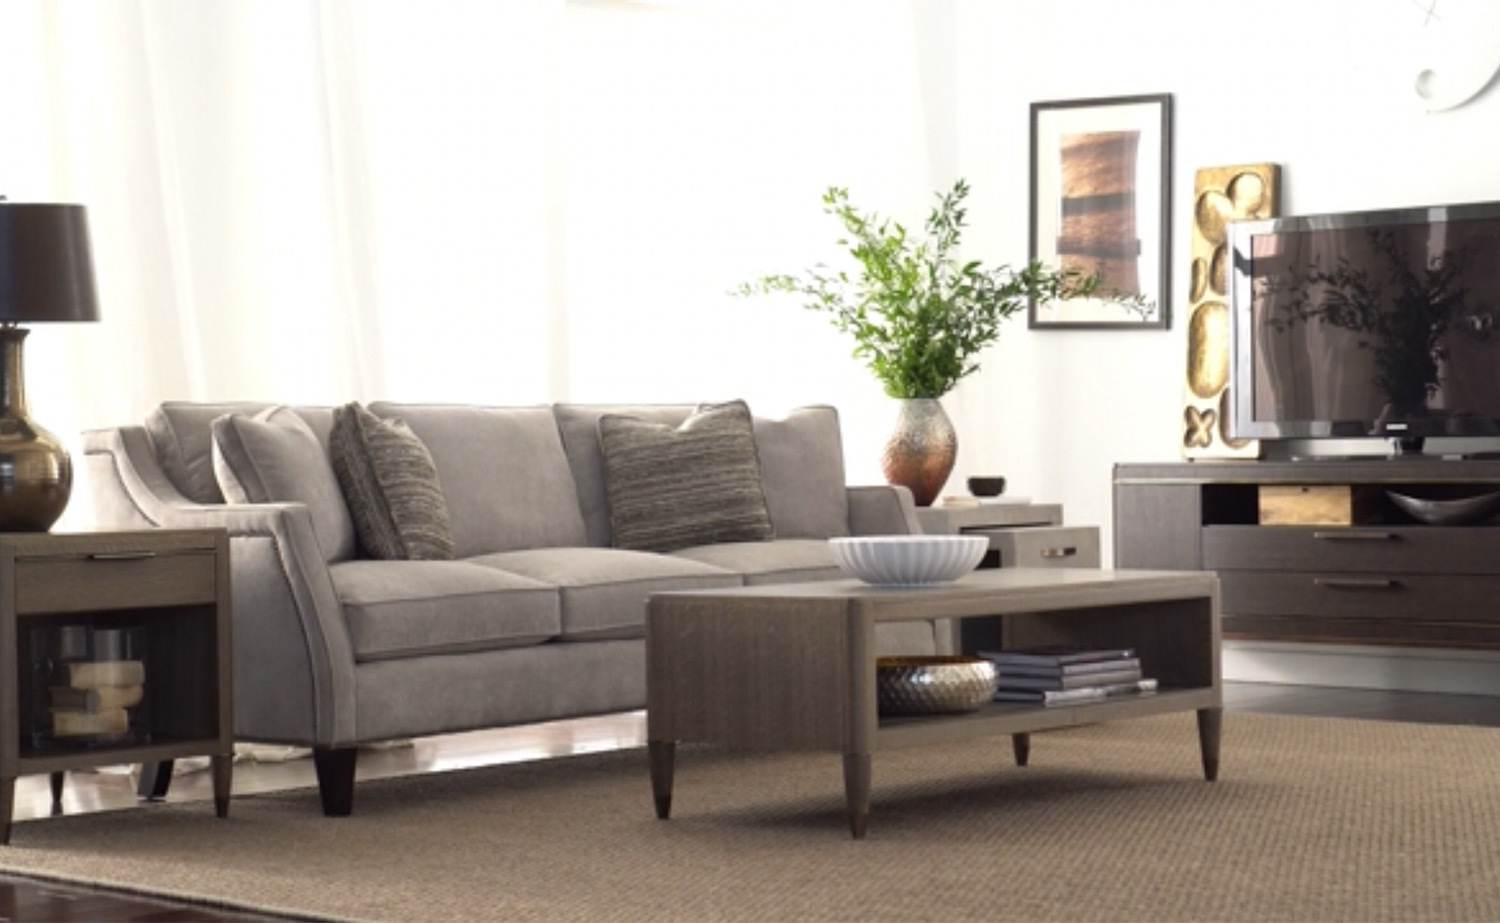 dalton sofa leon s linen covers nz hammary home furnishings